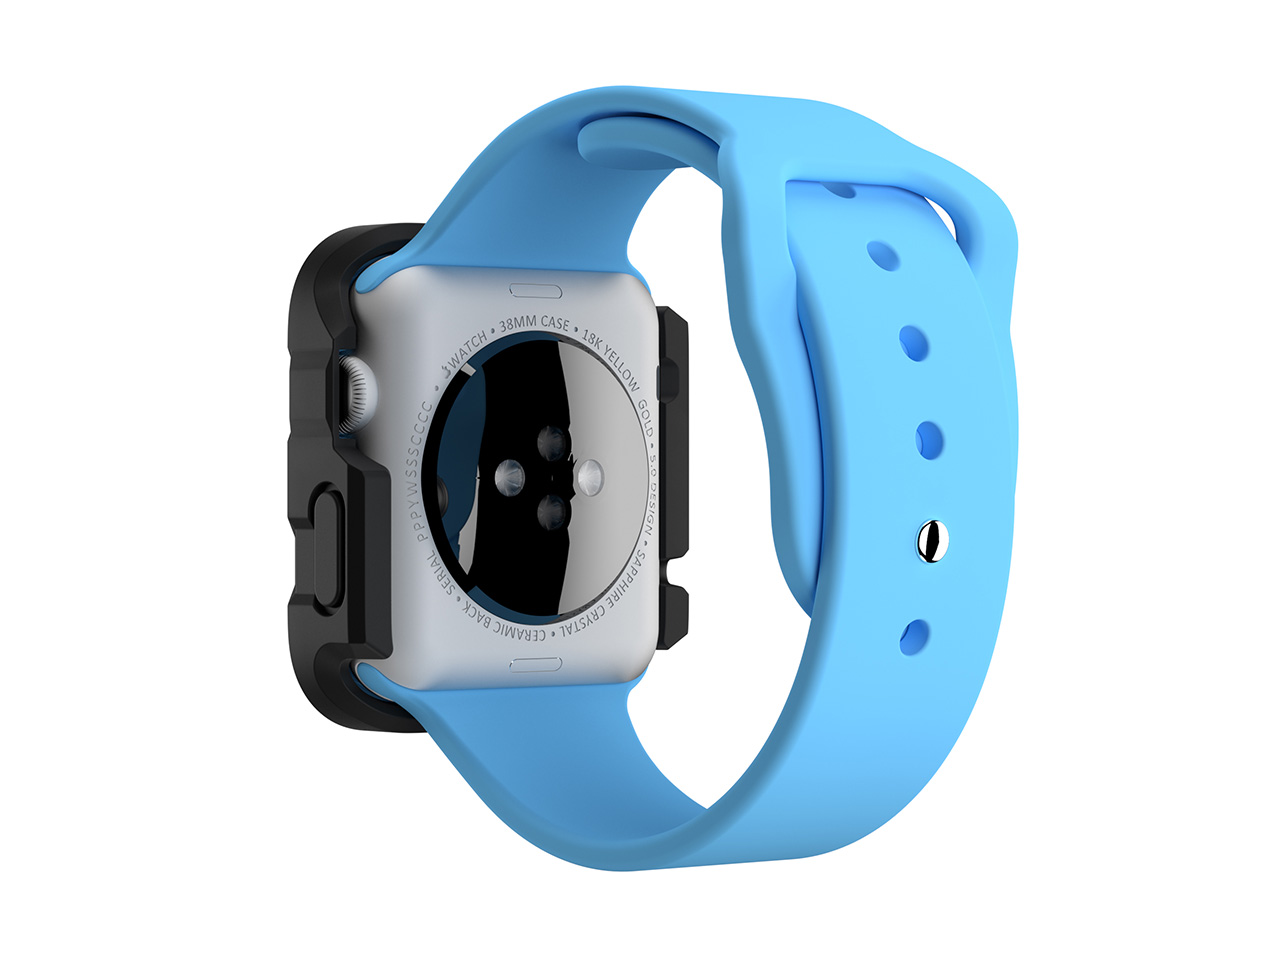 official photos c6d68 fcc46 Griffin Survivor Tactical Case for Apple Watch 38mm, You and your Apple  Watch. Ready for anything.